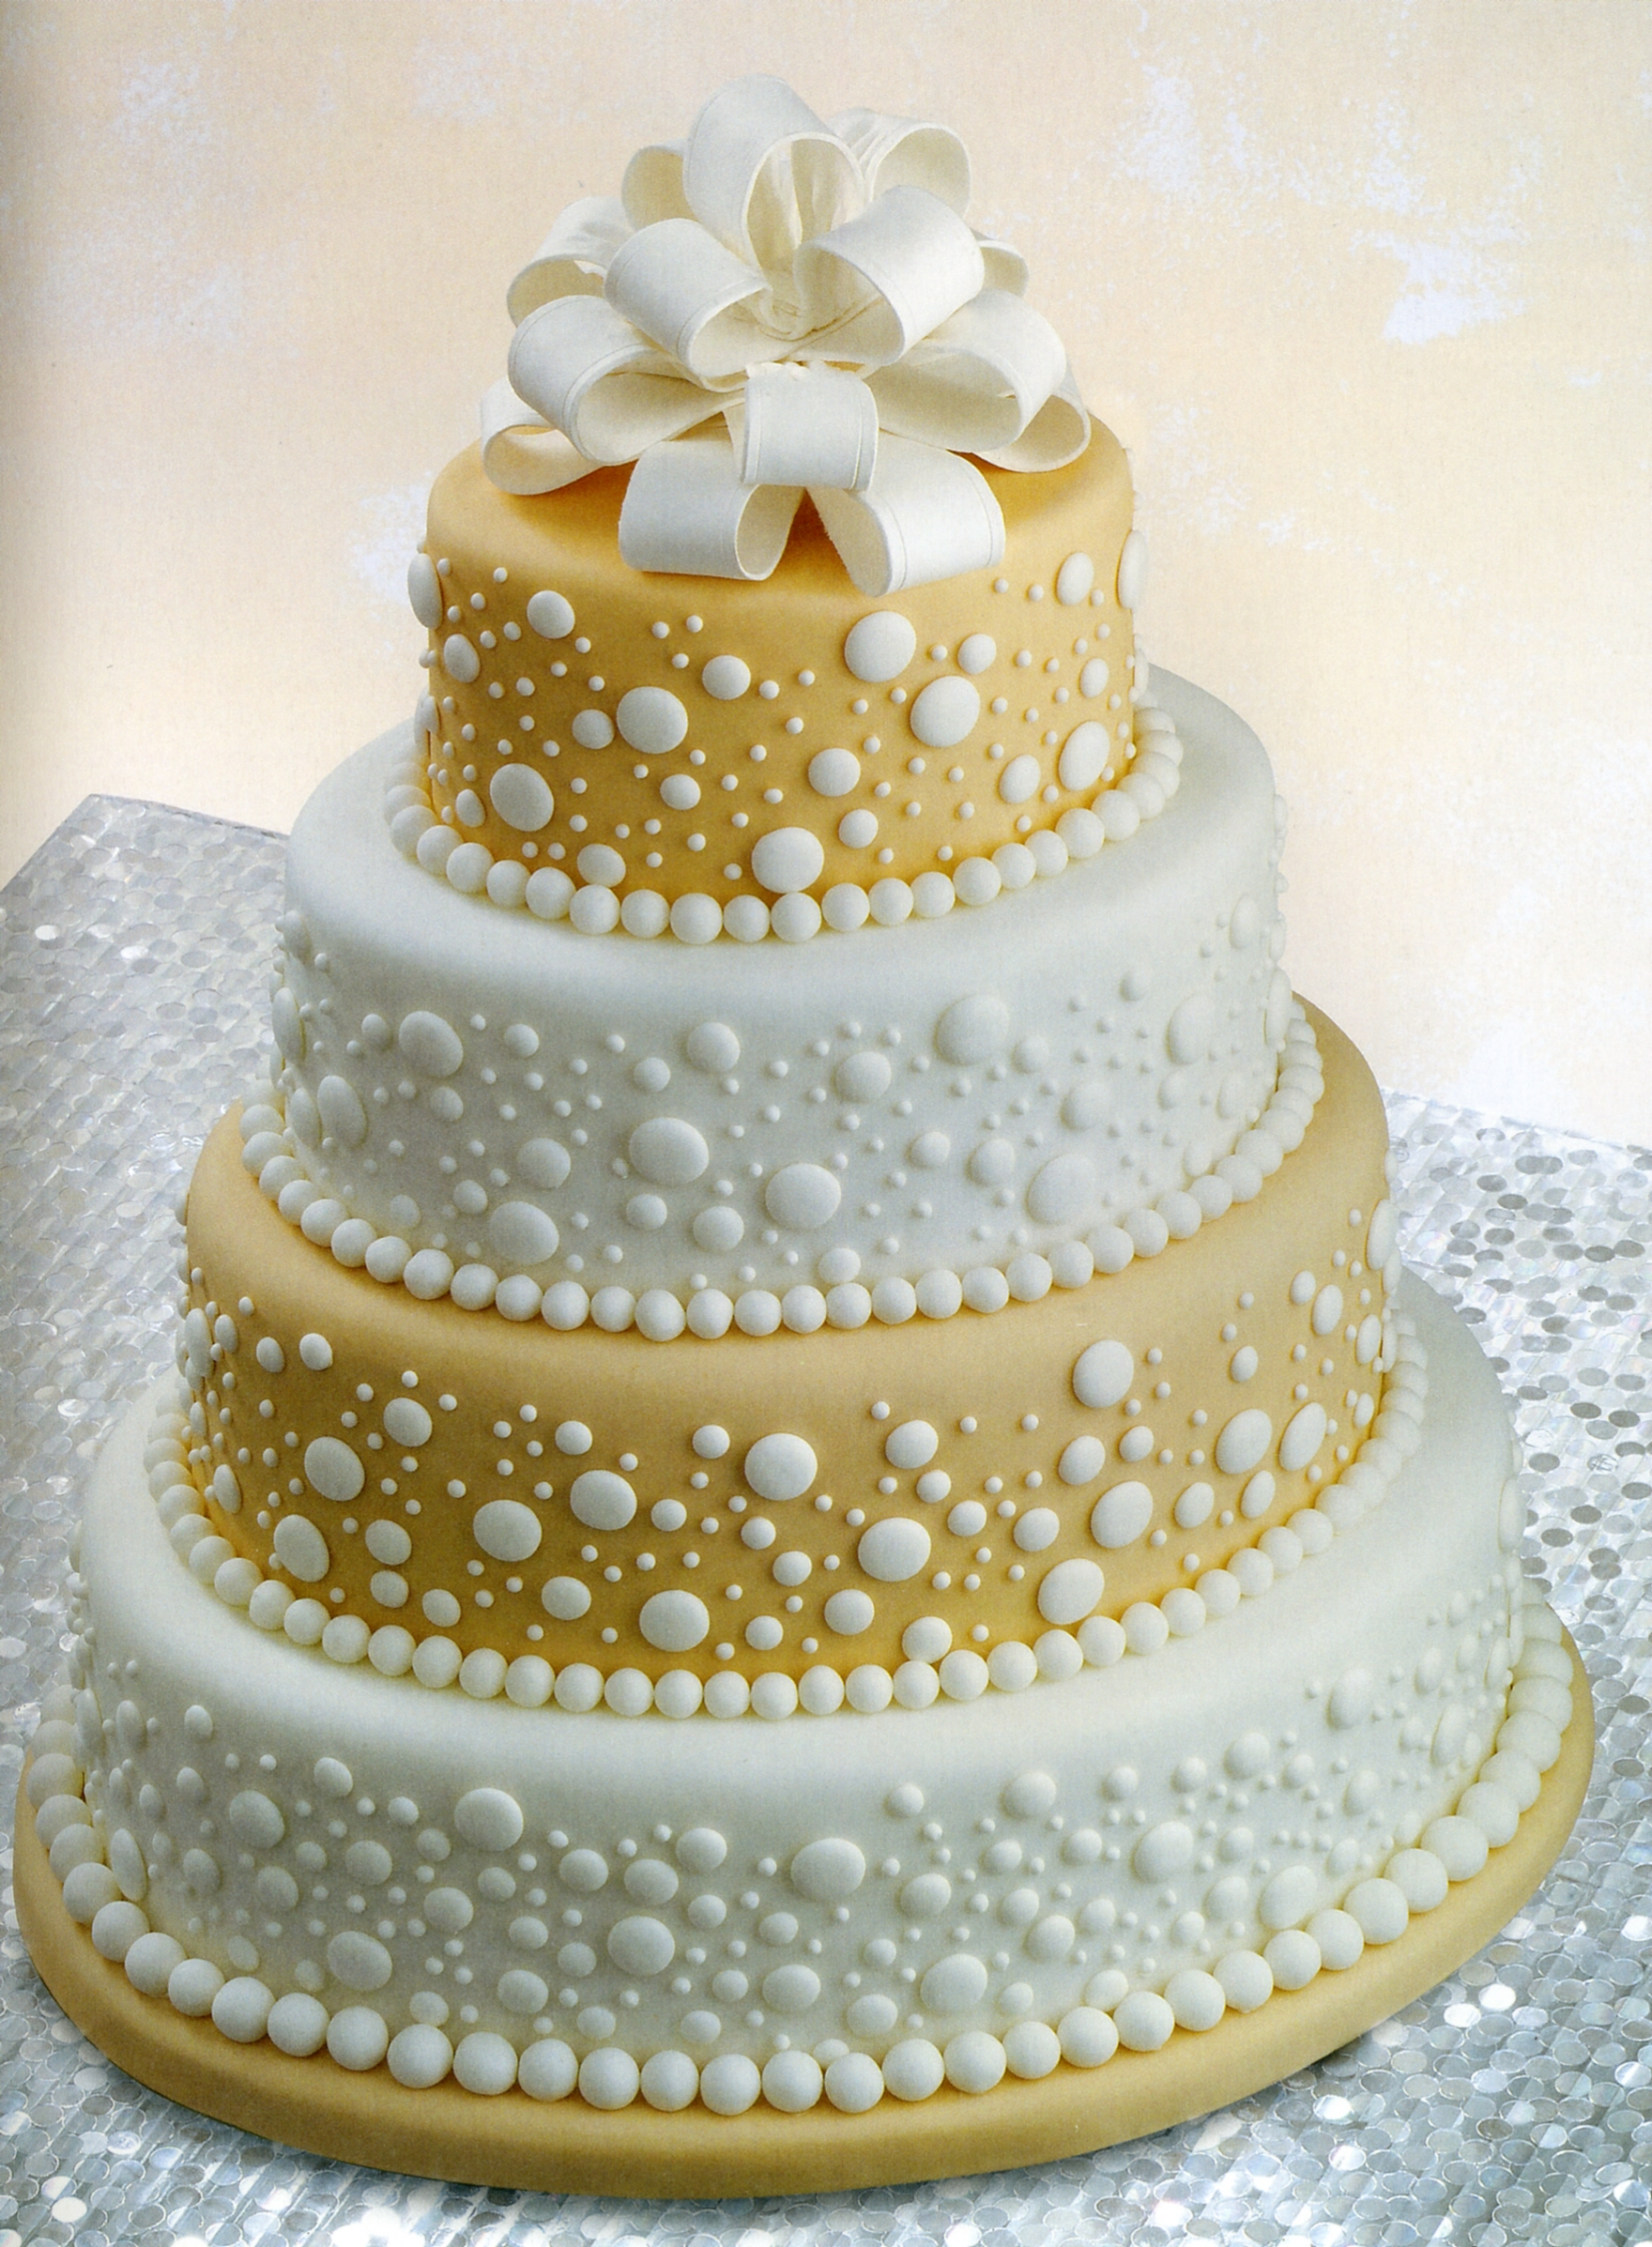 Would You Like To View More Cake Ideas